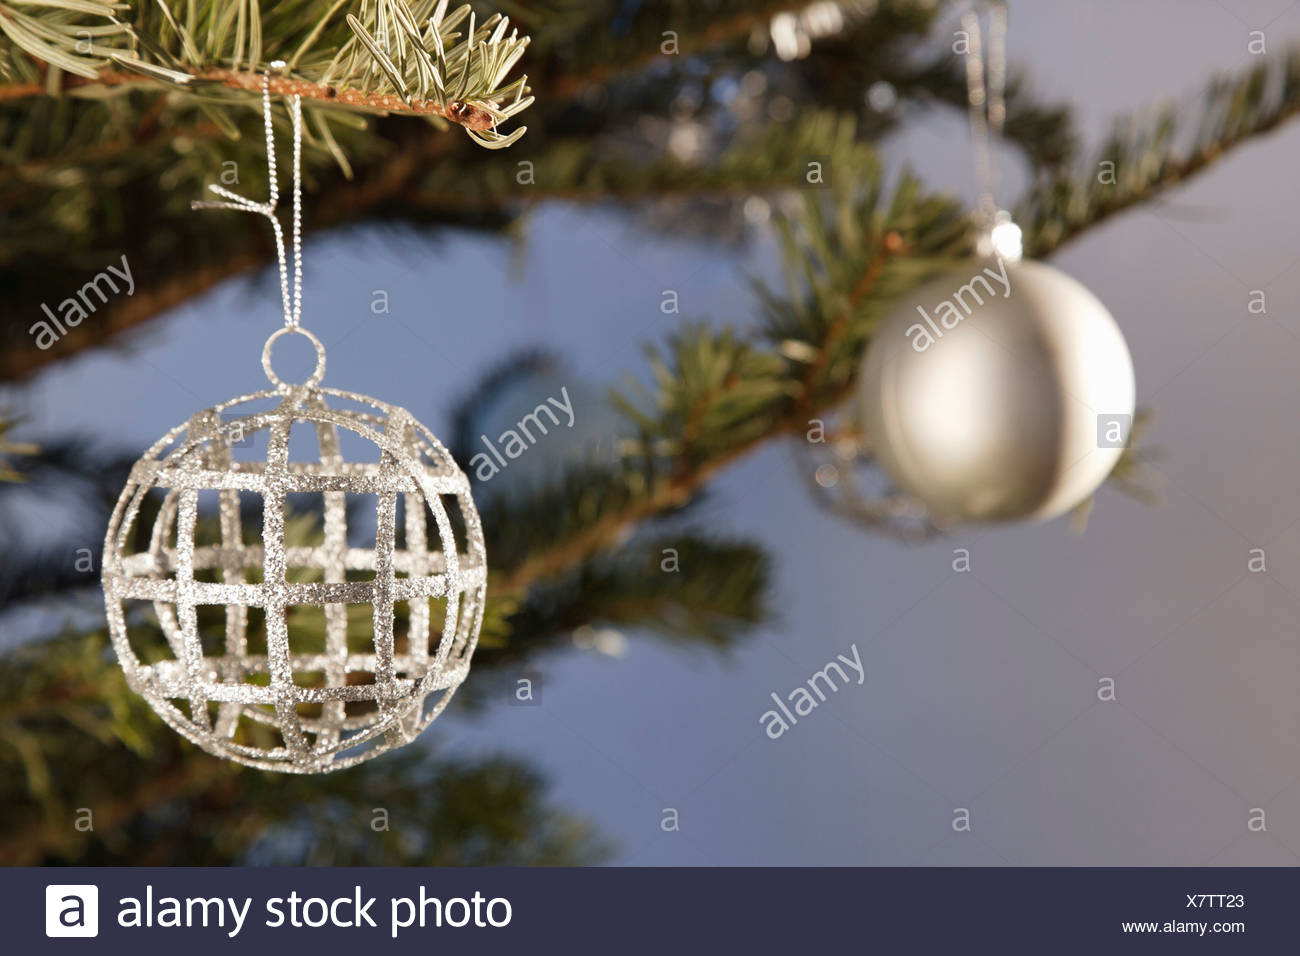 Close up of ornament on Christmas Tree Photo Stock